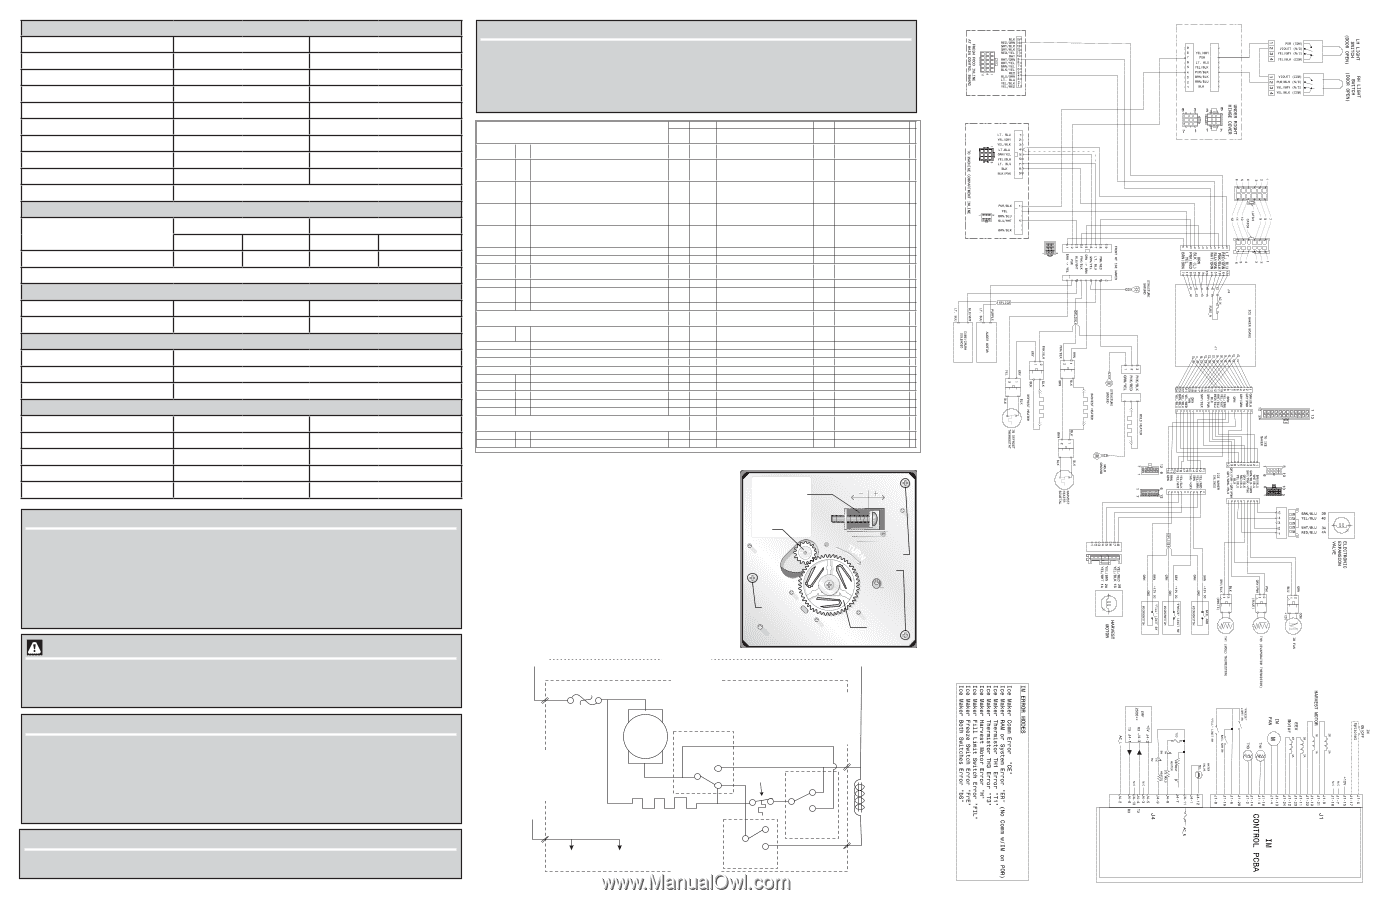 Frigidaire FGHB2844LF | Wiring Diagram (All Languages) on electrical diagrams, troubleshooting diagrams, honda motorcycle repair diagrams, sincgars radio configurations diagrams, snatch block diagrams, motor diagrams, hvac diagrams, switch diagrams, pinout diagrams, friendship bracelet diagrams, transformer diagrams, engine diagrams, gmc fuse box diagrams, smart car diagrams, lighting diagrams, series and parallel circuits diagrams, internet of things diagrams, electronic circuit diagrams, led circuit diagrams, battery diagrams,